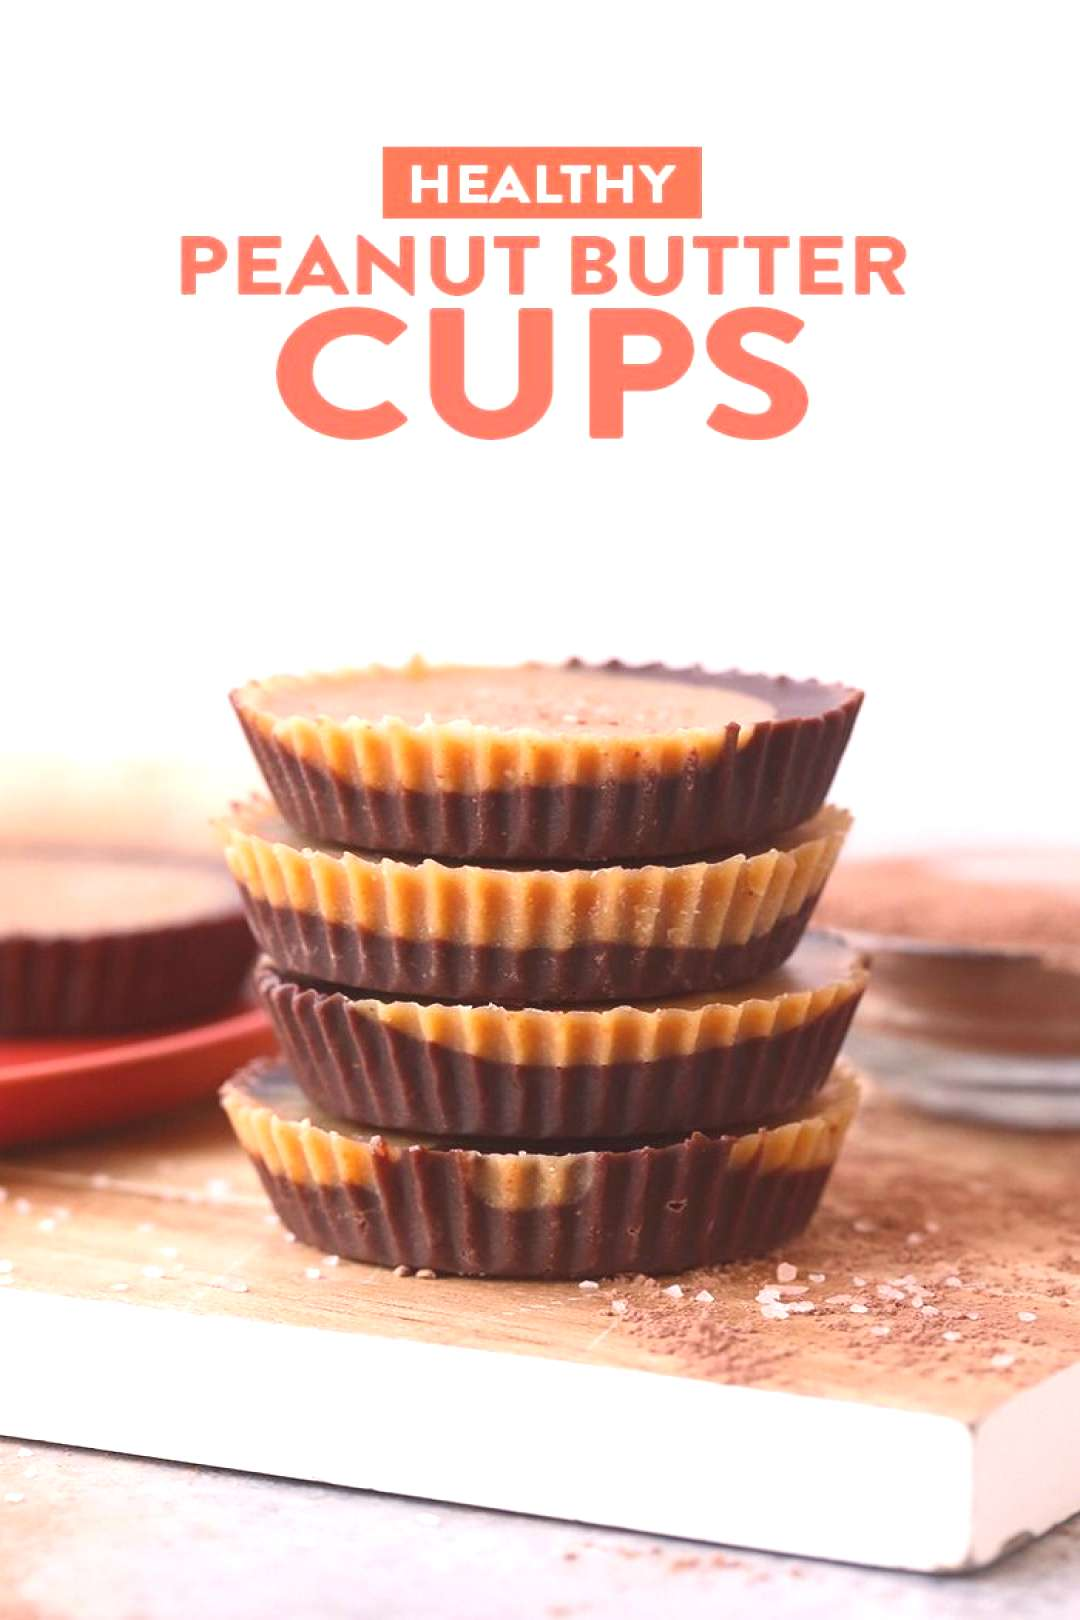 These healthy peanut butter cups are nutritious, delicious and made with good-for-you ingredients.